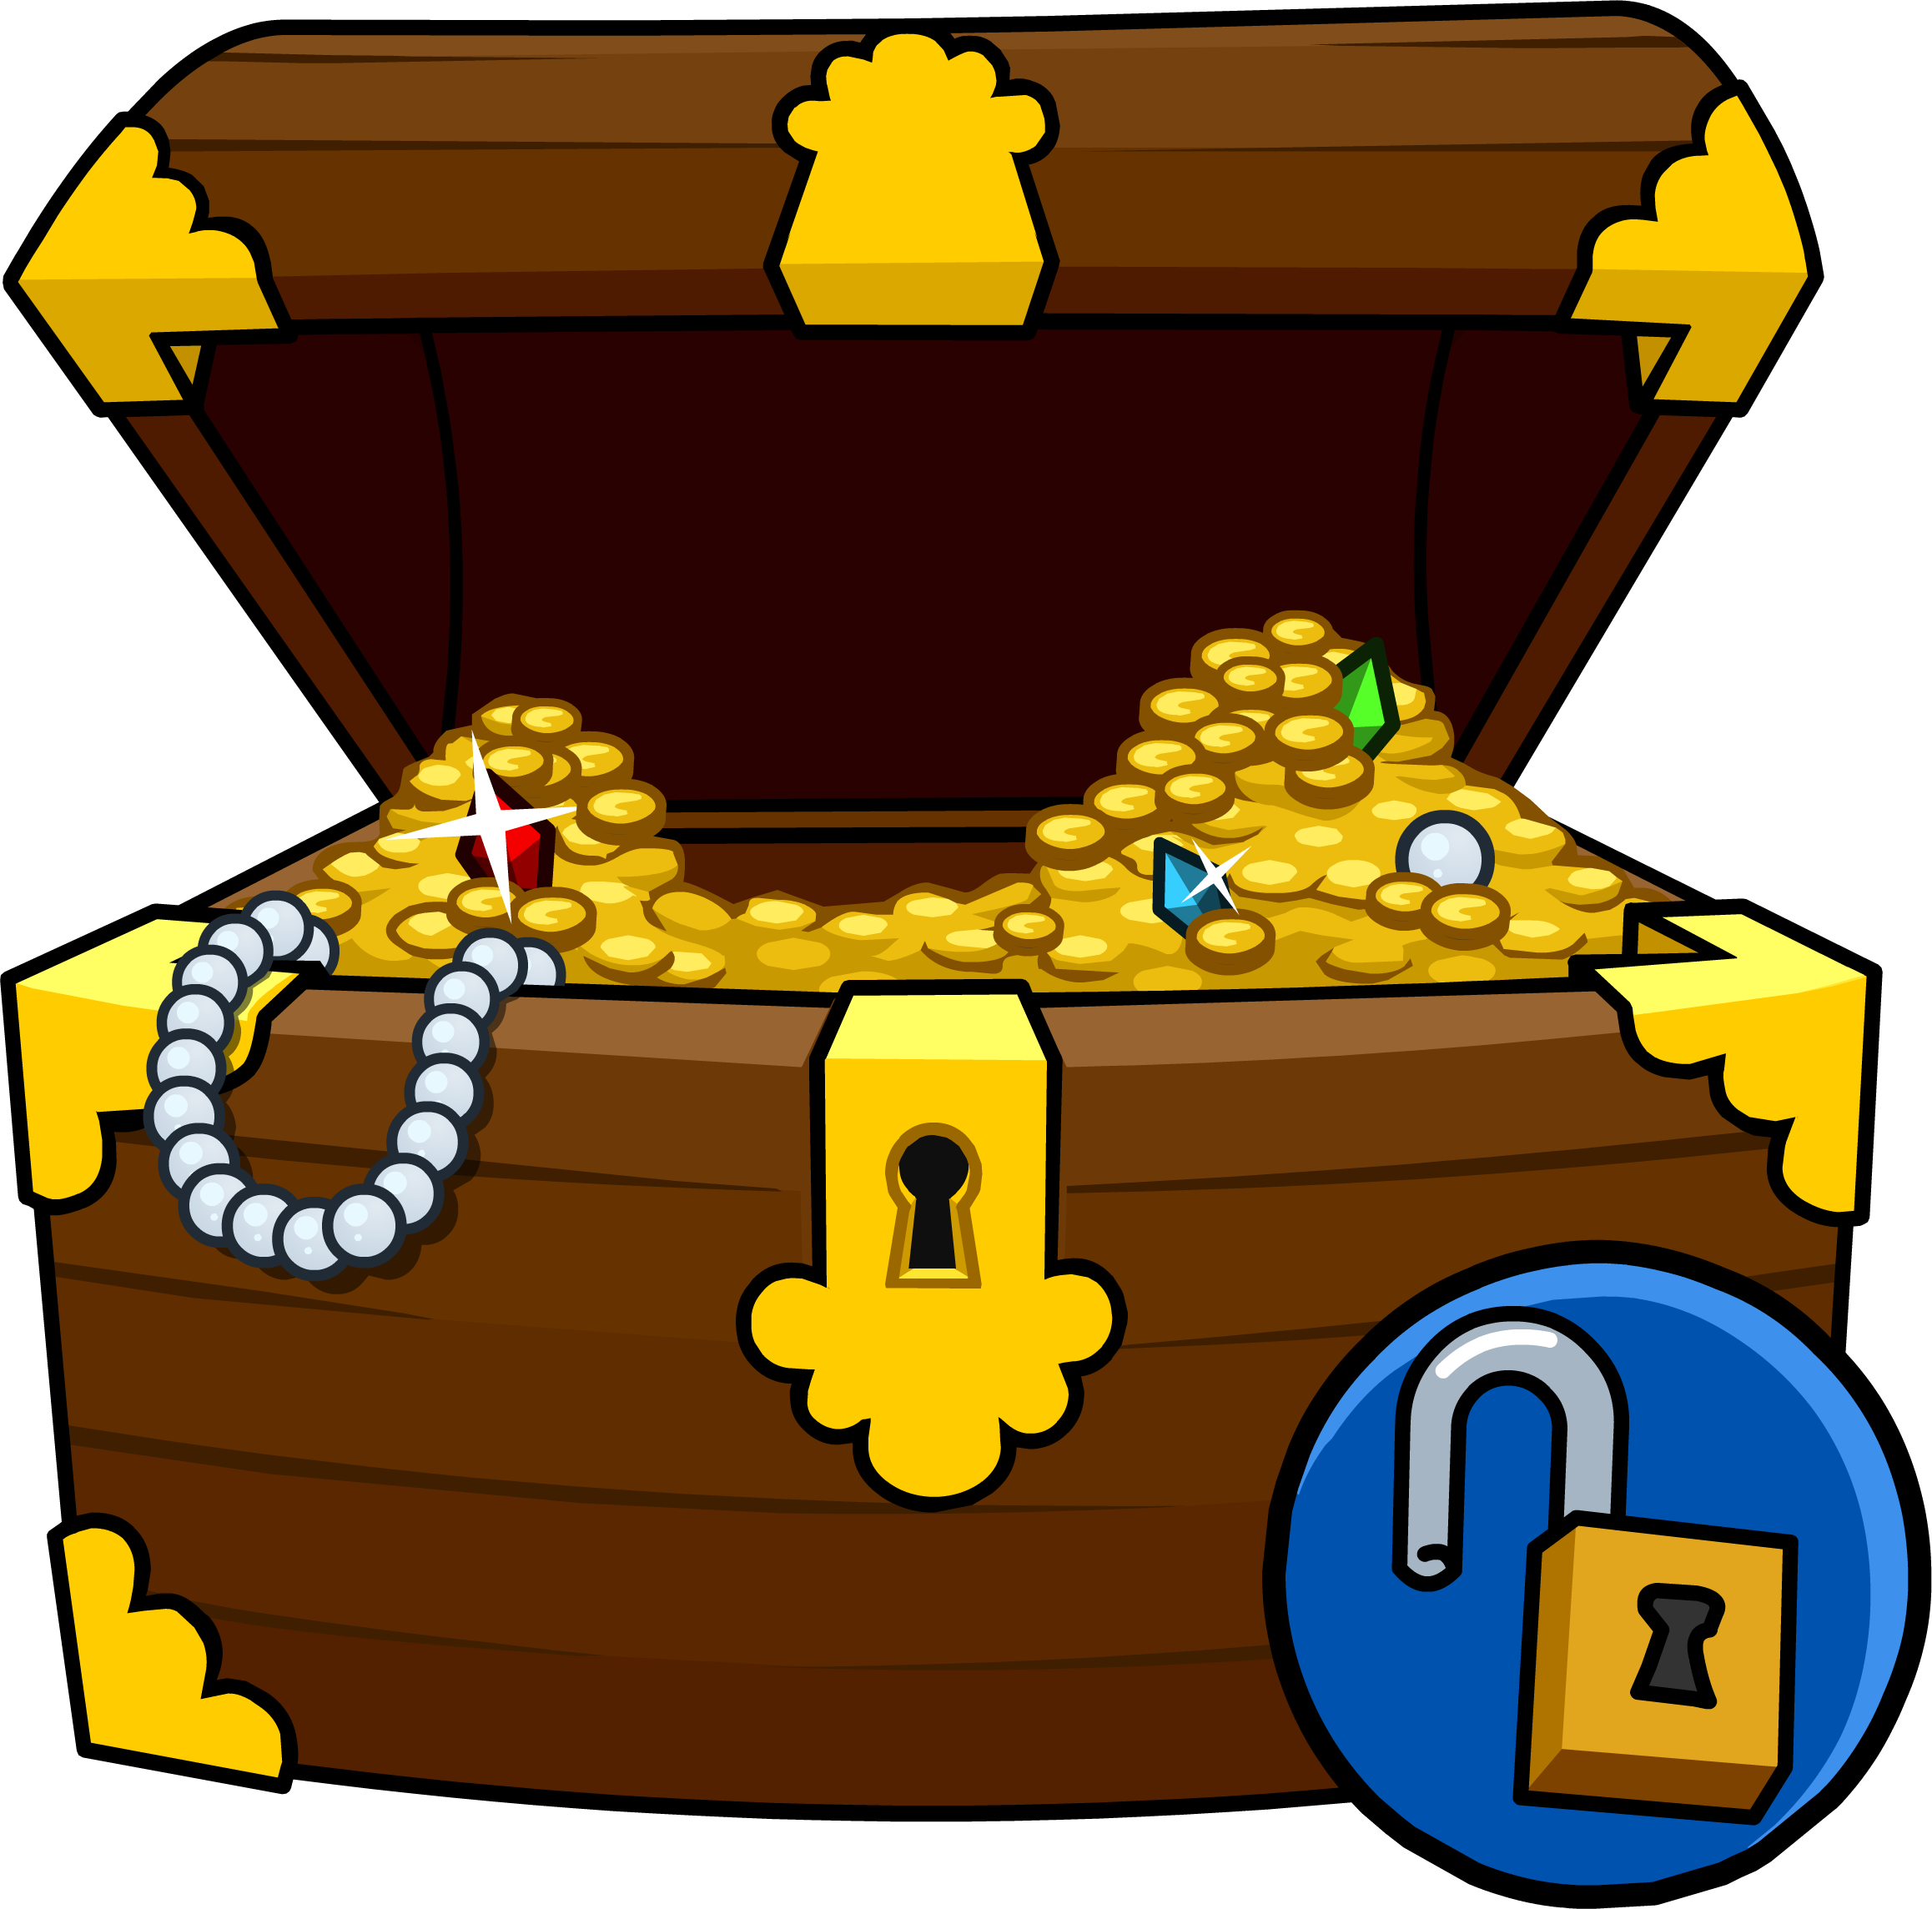 png transparent library Introducing pictures of chests. Treasure clipart found treasure